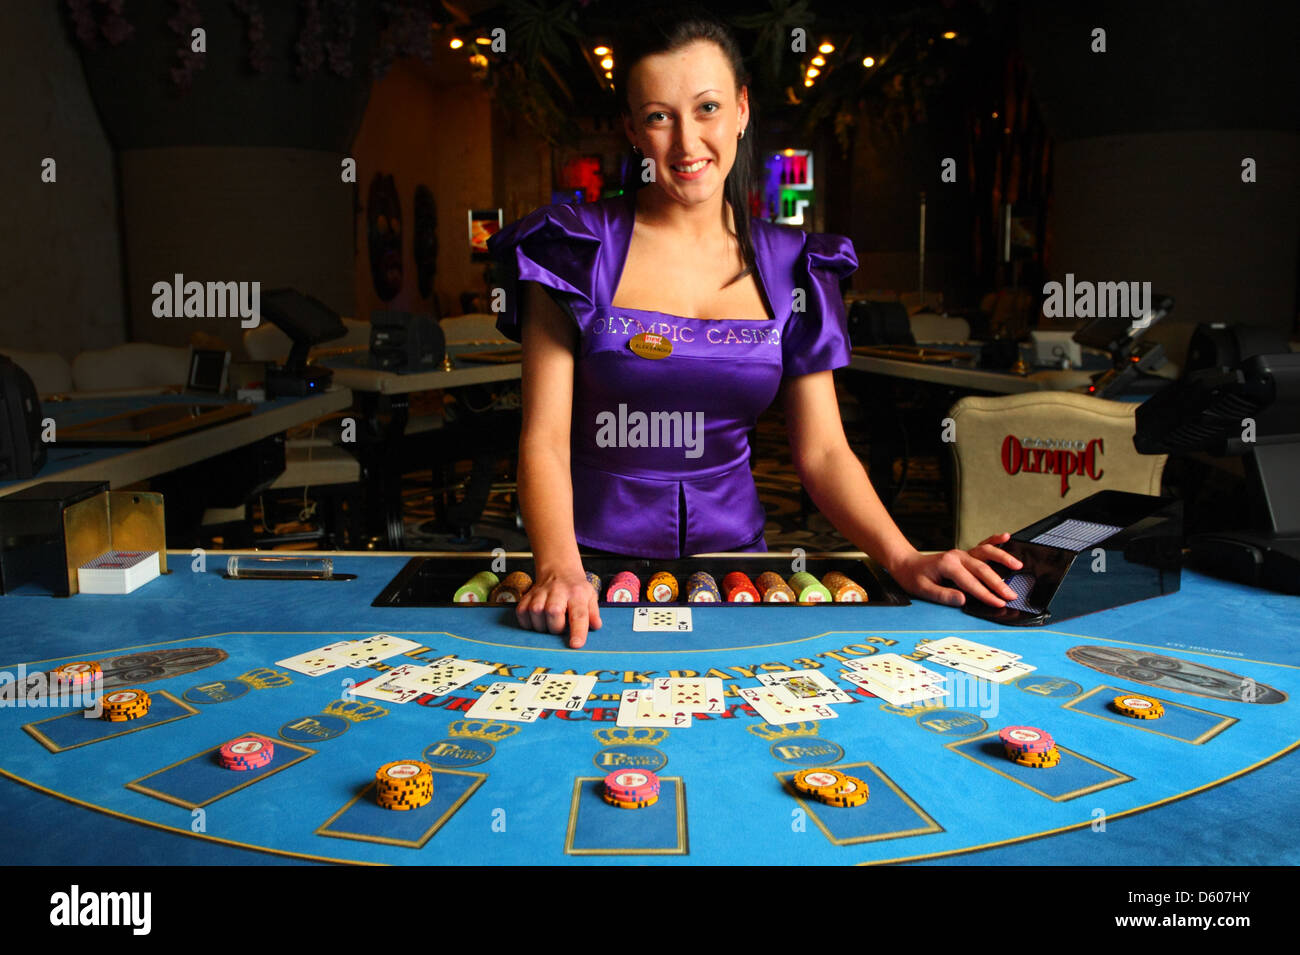 Smiling dealer, croupier showing cards in casino at blackjack table. Europe - Stock Image